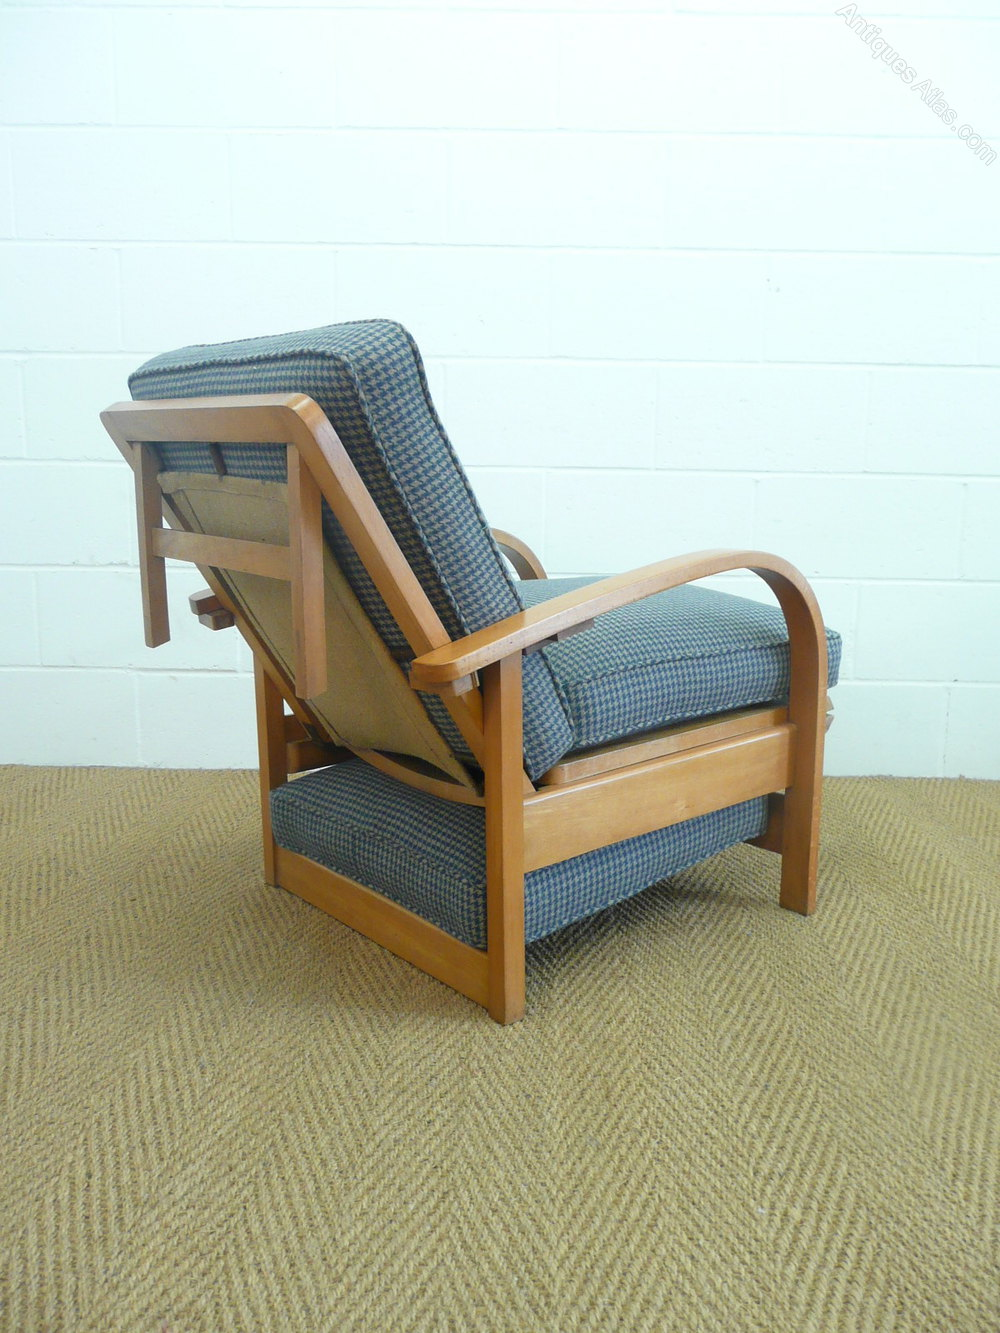 Art Deco Recliner Armchair / Daybed - Antiques Atlas